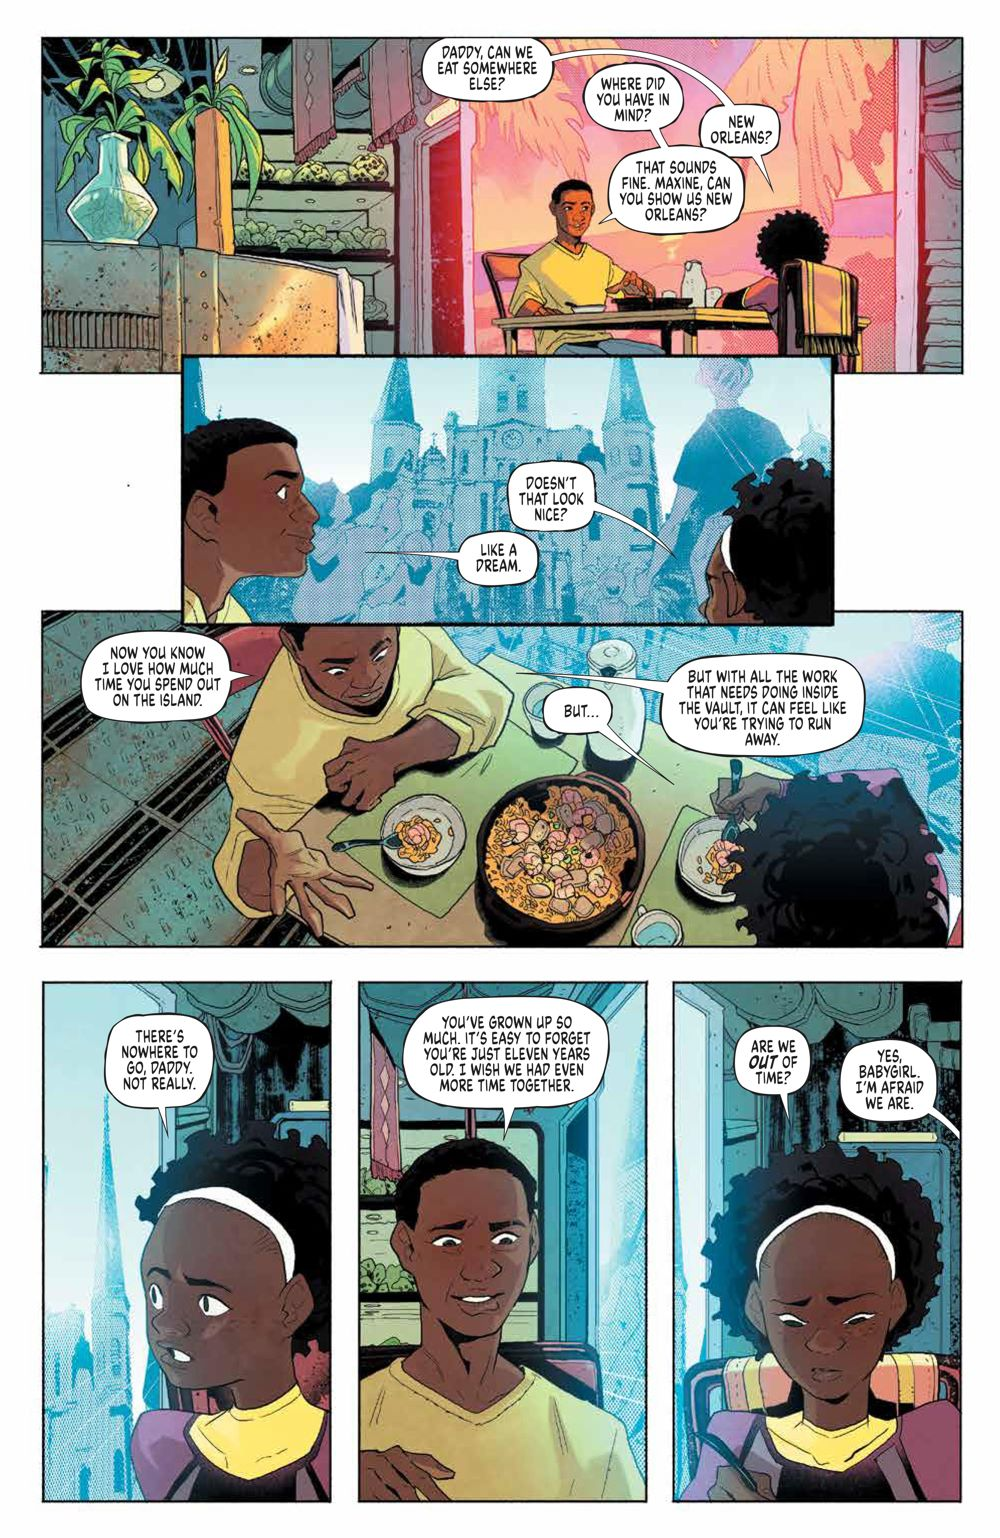 Eve_001_PRESS_7 ComicList Previews: EVE #1 (OF 5)